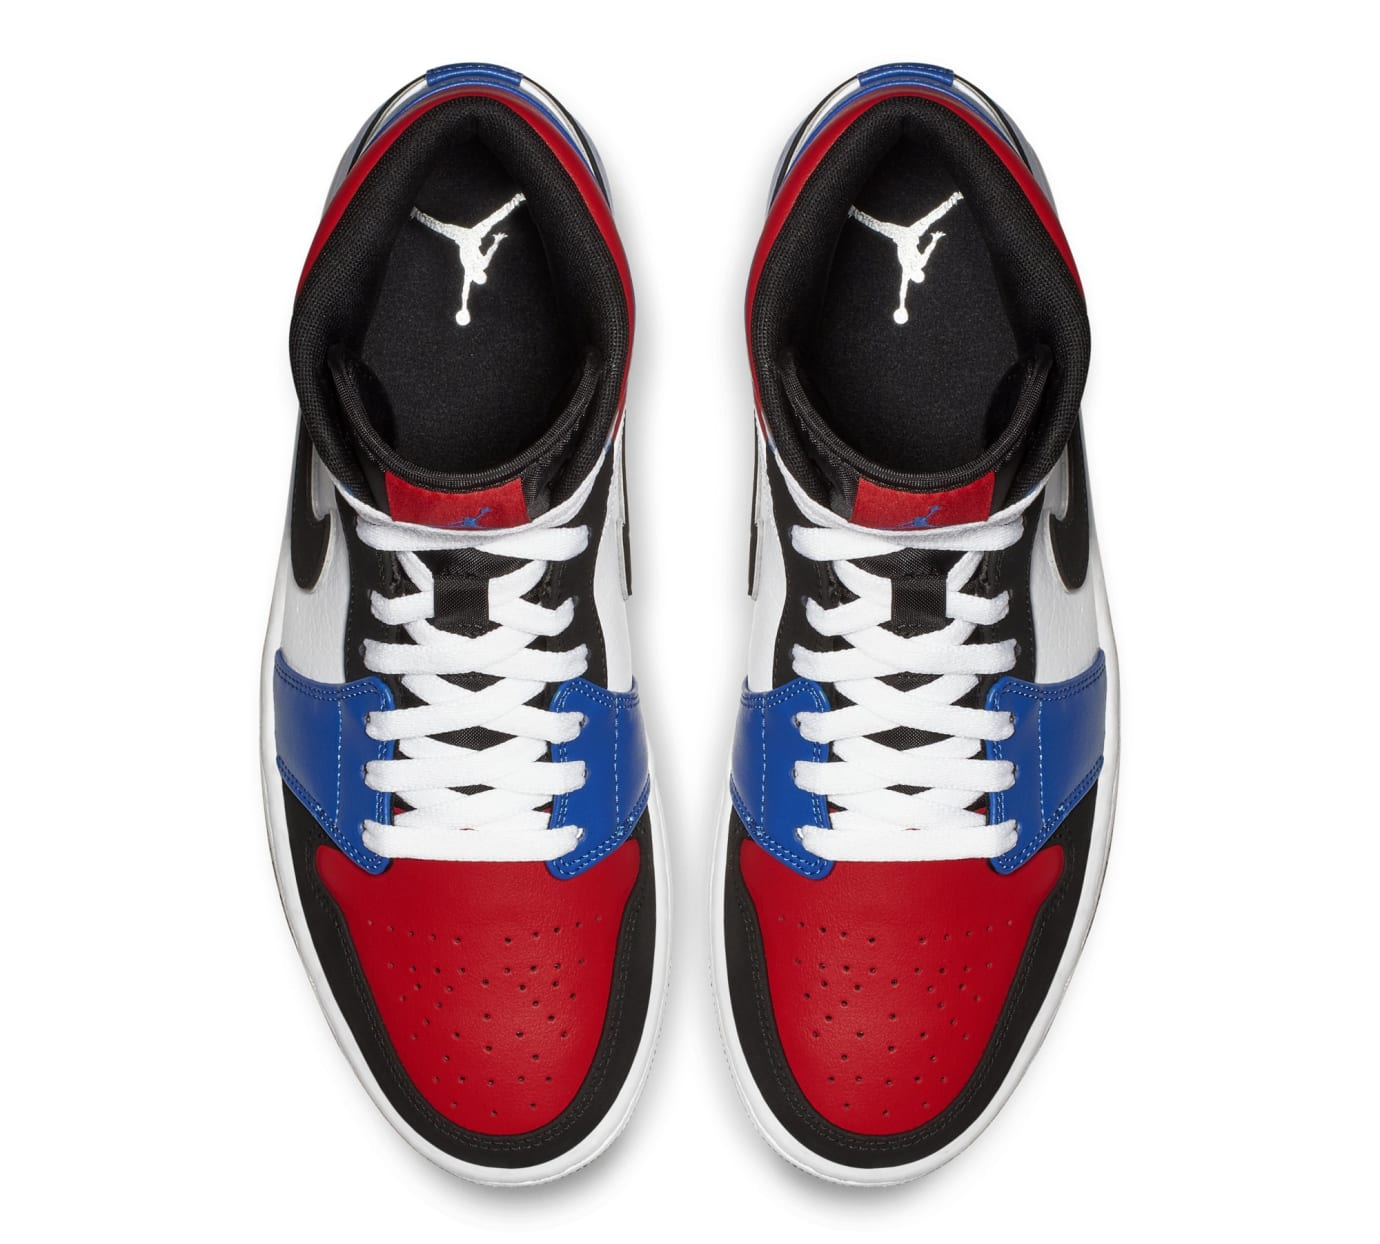 c789ee67829397 Image via Nike Air Jordan 1 Mid  Blue Red White Black  554724-124